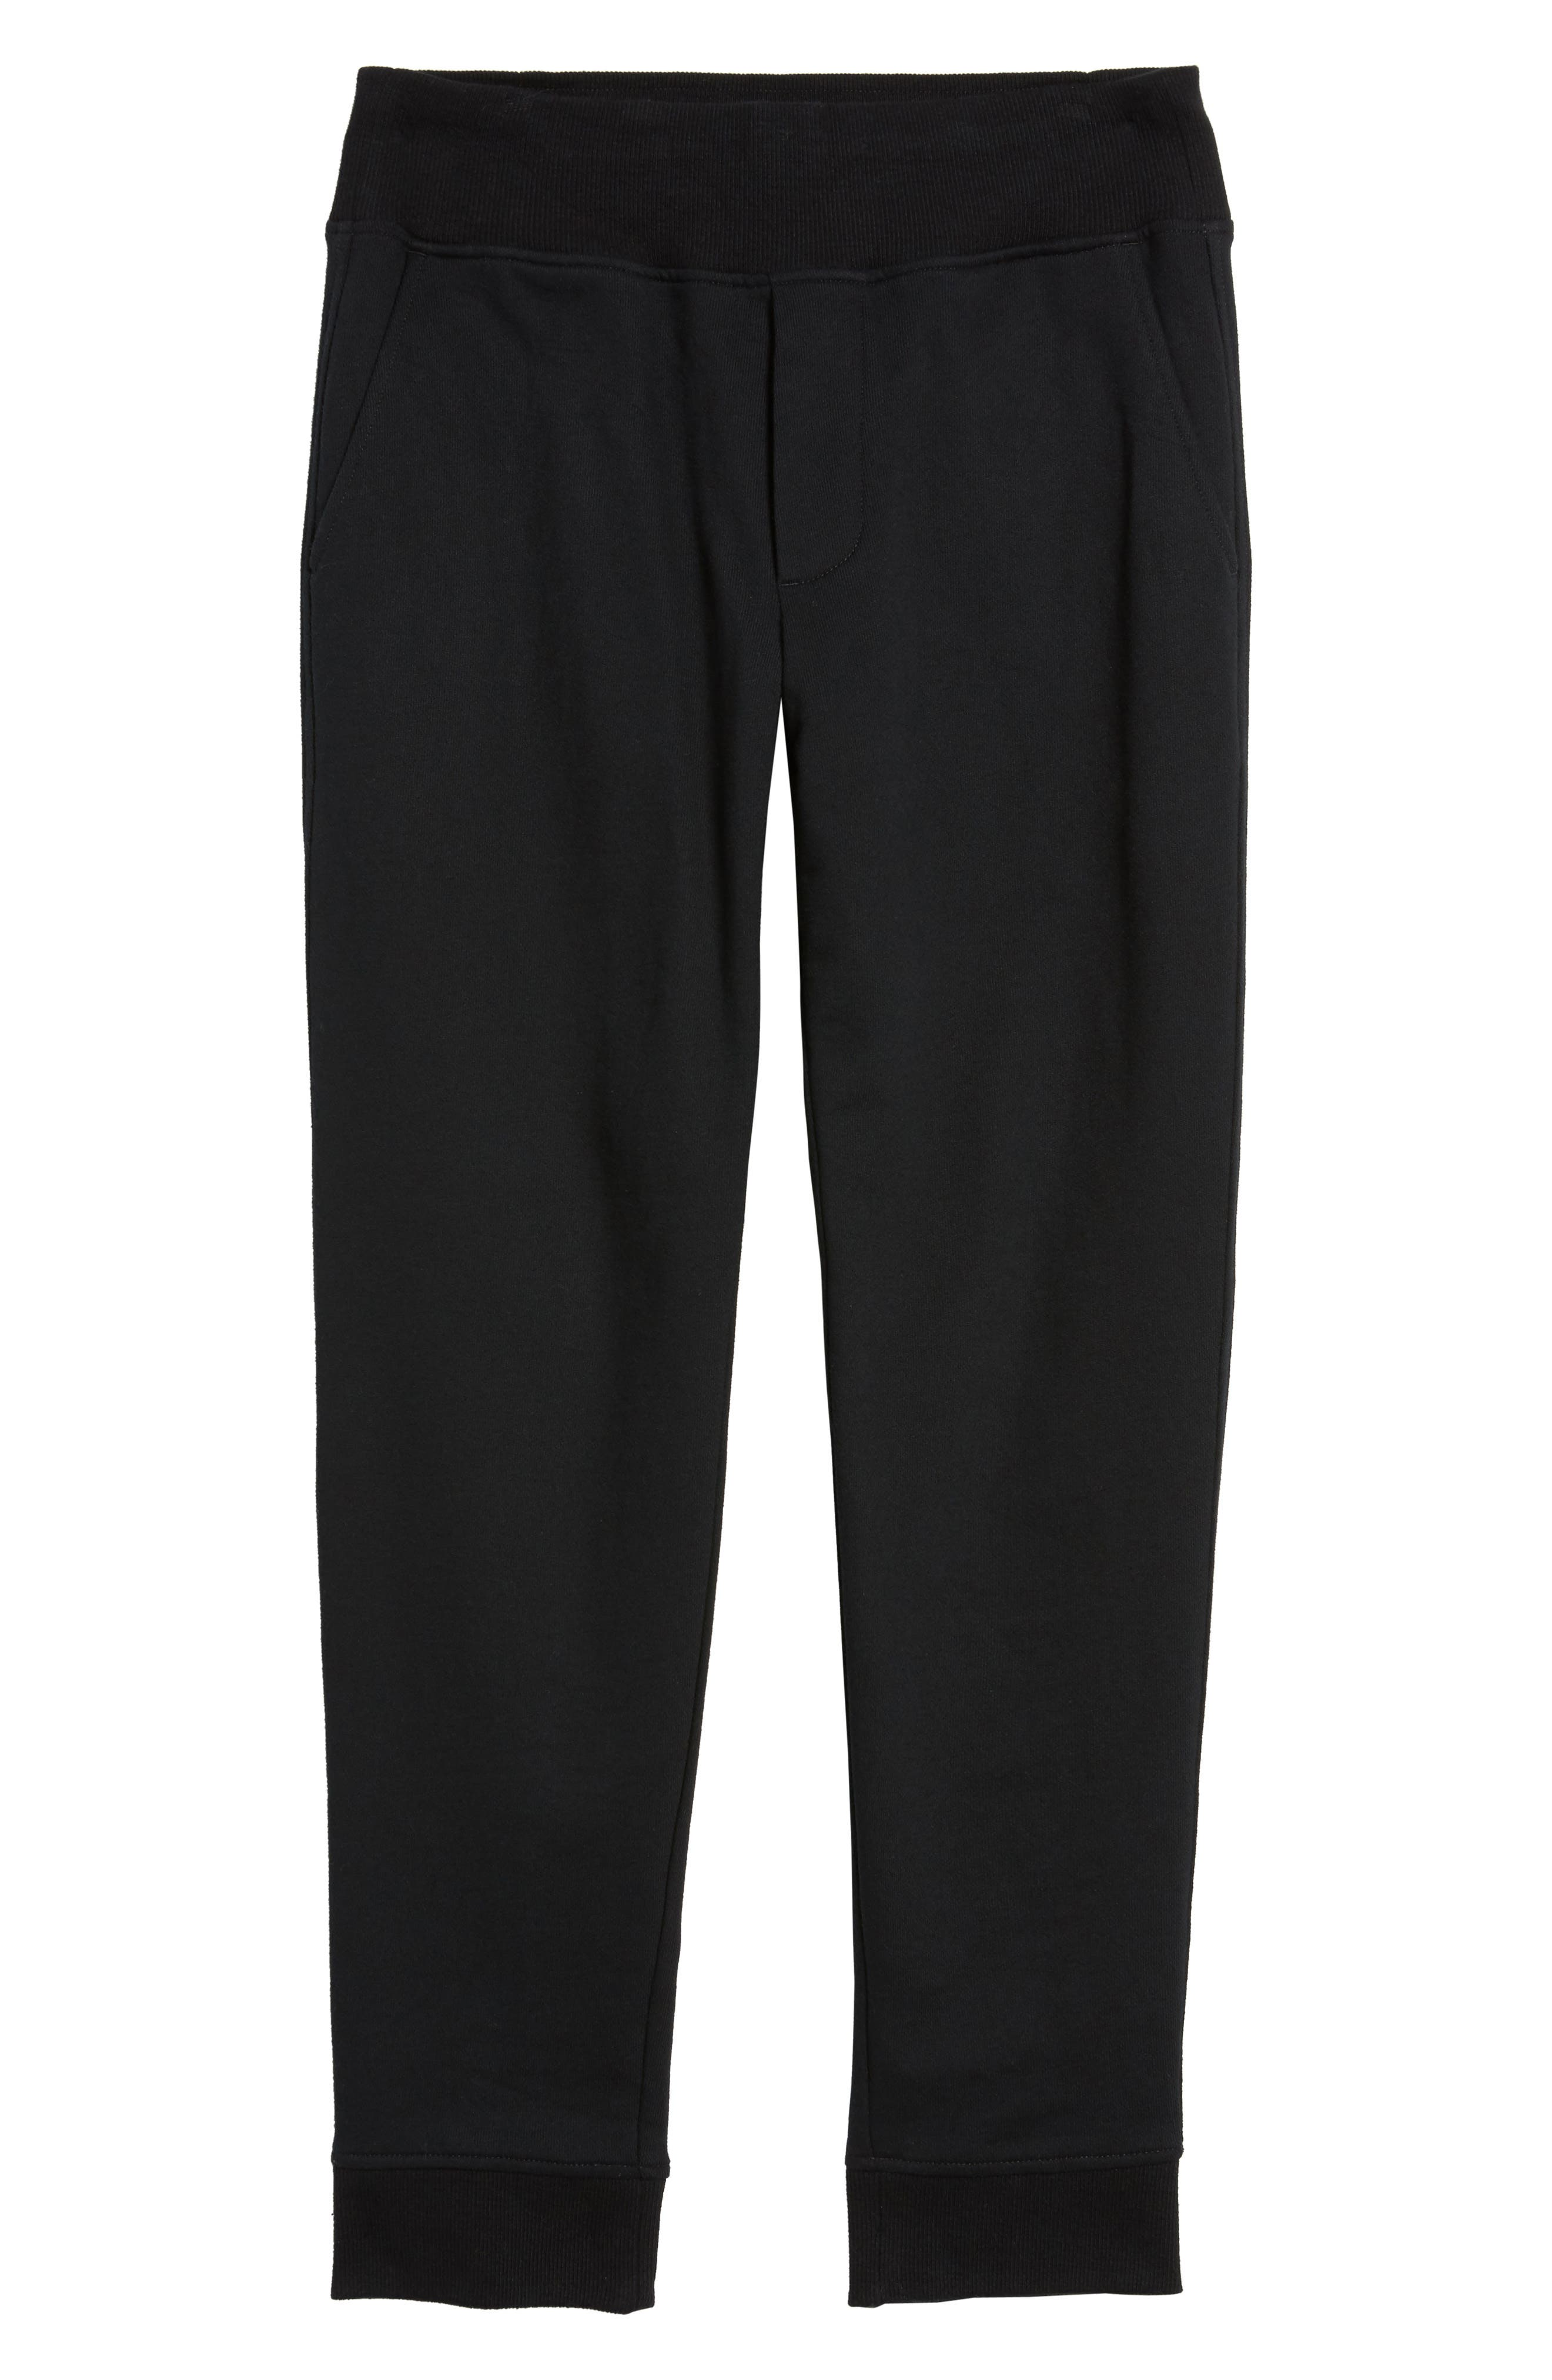 French Terry Regular Fit Sweatpants,                             Alternate thumbnail 6, color,                             001